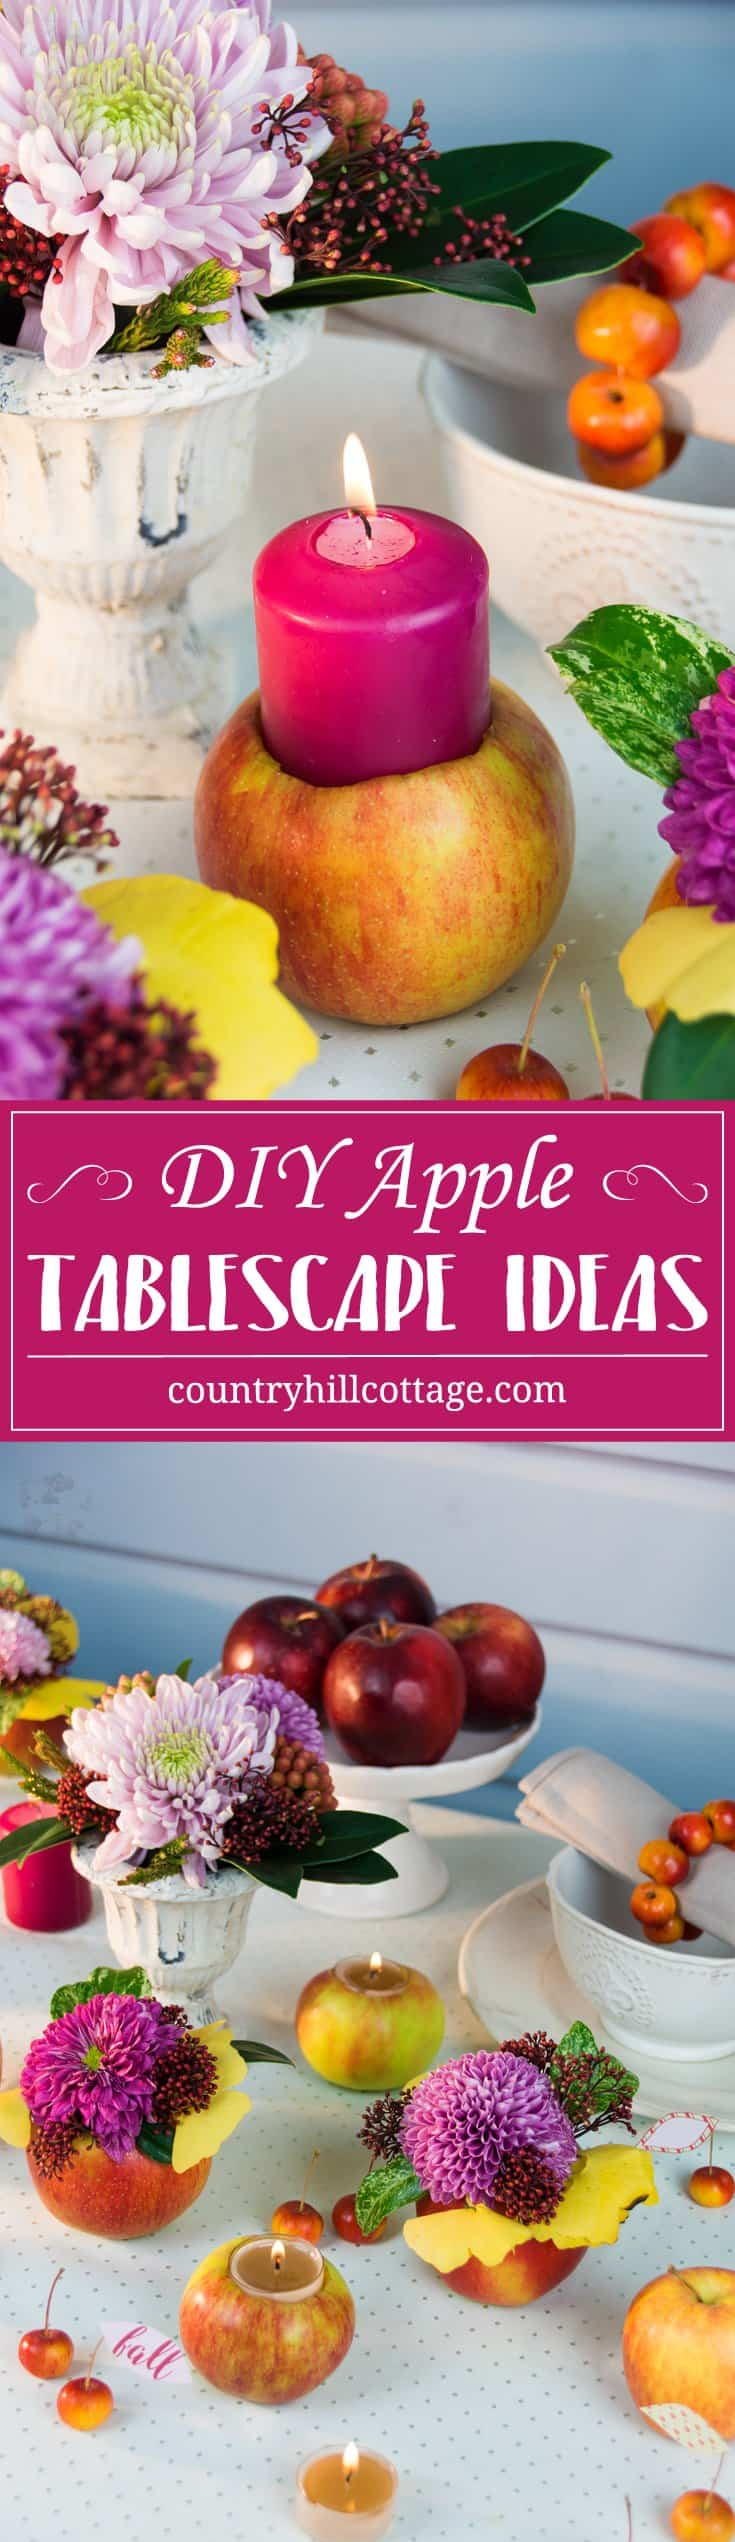 Using our apple DIYs, you can create beautiful and festivie tablescapes for Thanksgiving or Christmas! | countryhillcottage.com